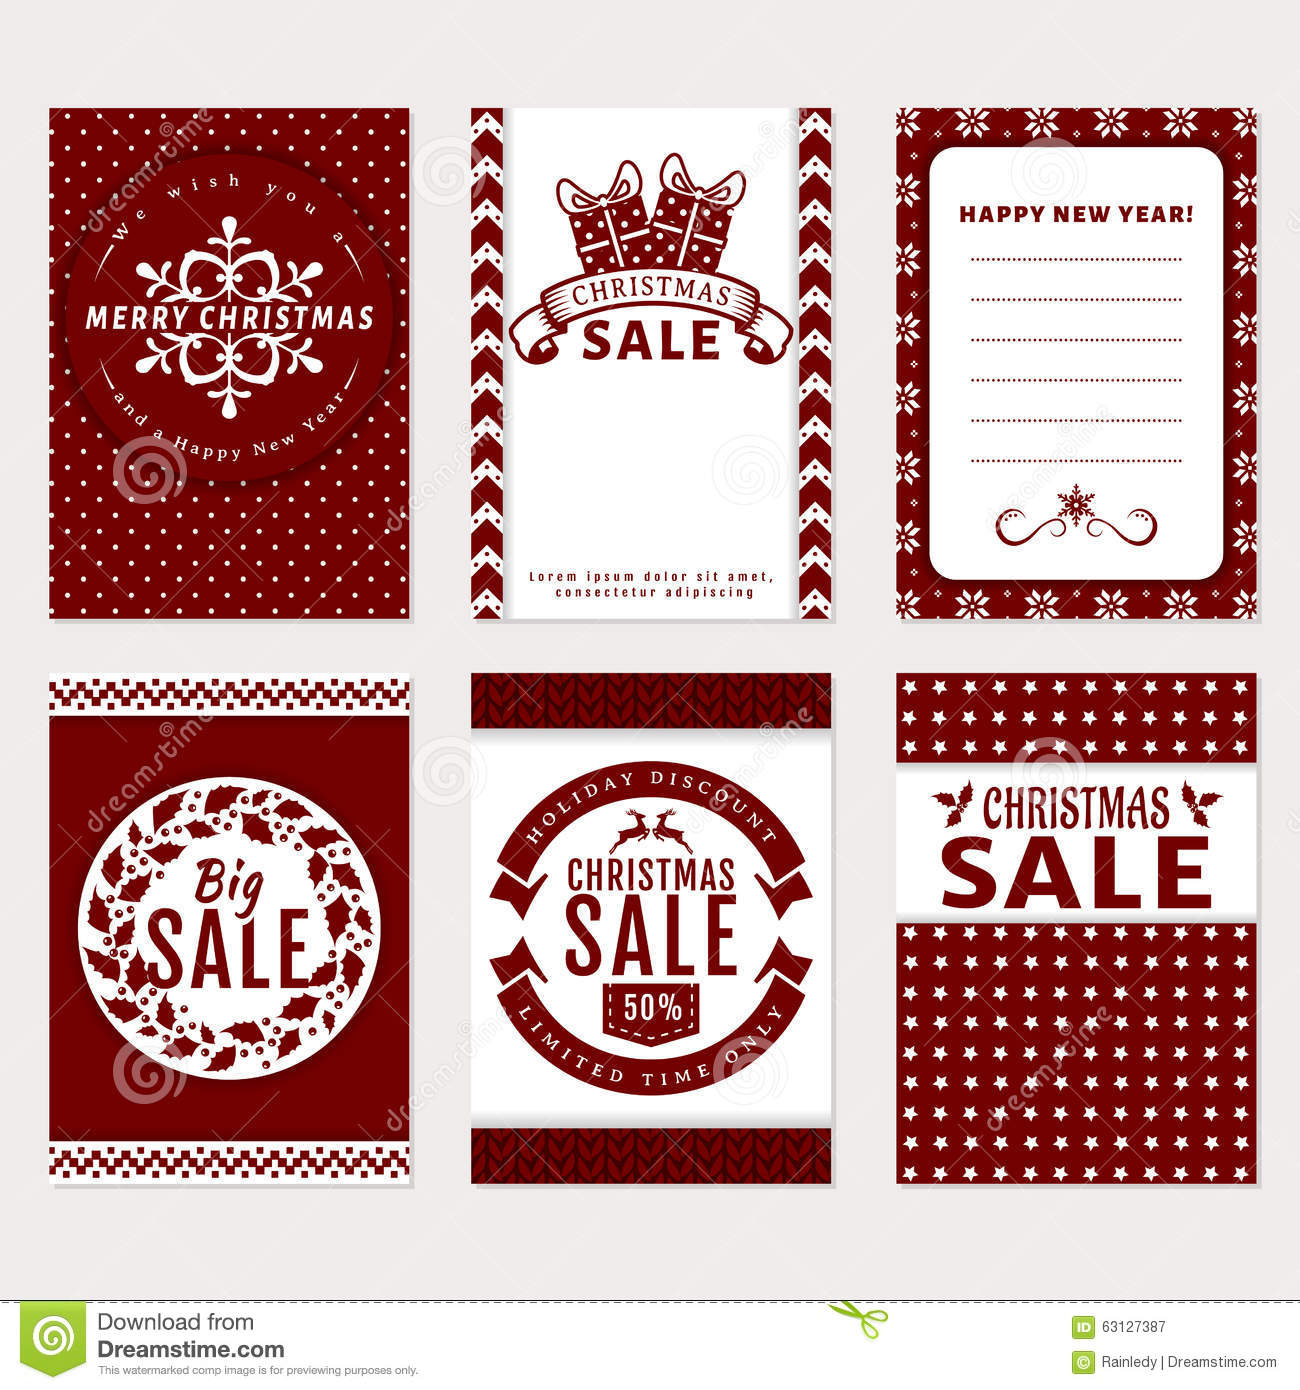 Christmas Banners Set - Sale And Greeting Cards. Stock Vector ...